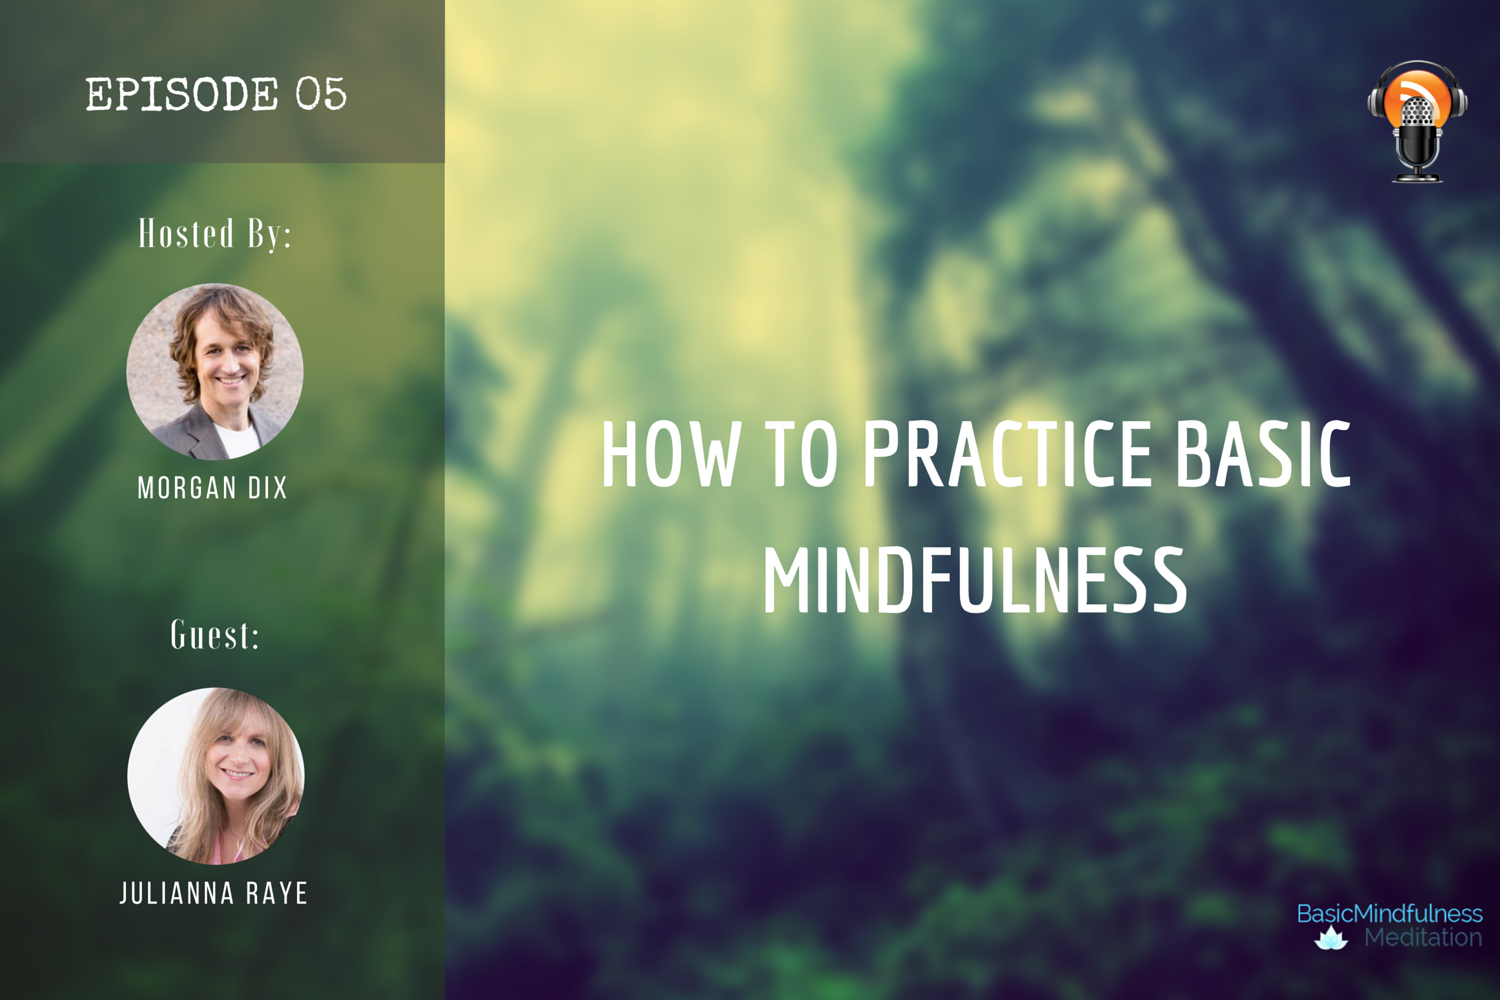 HOW TO PRACTICE BASIC MINDFULNESS